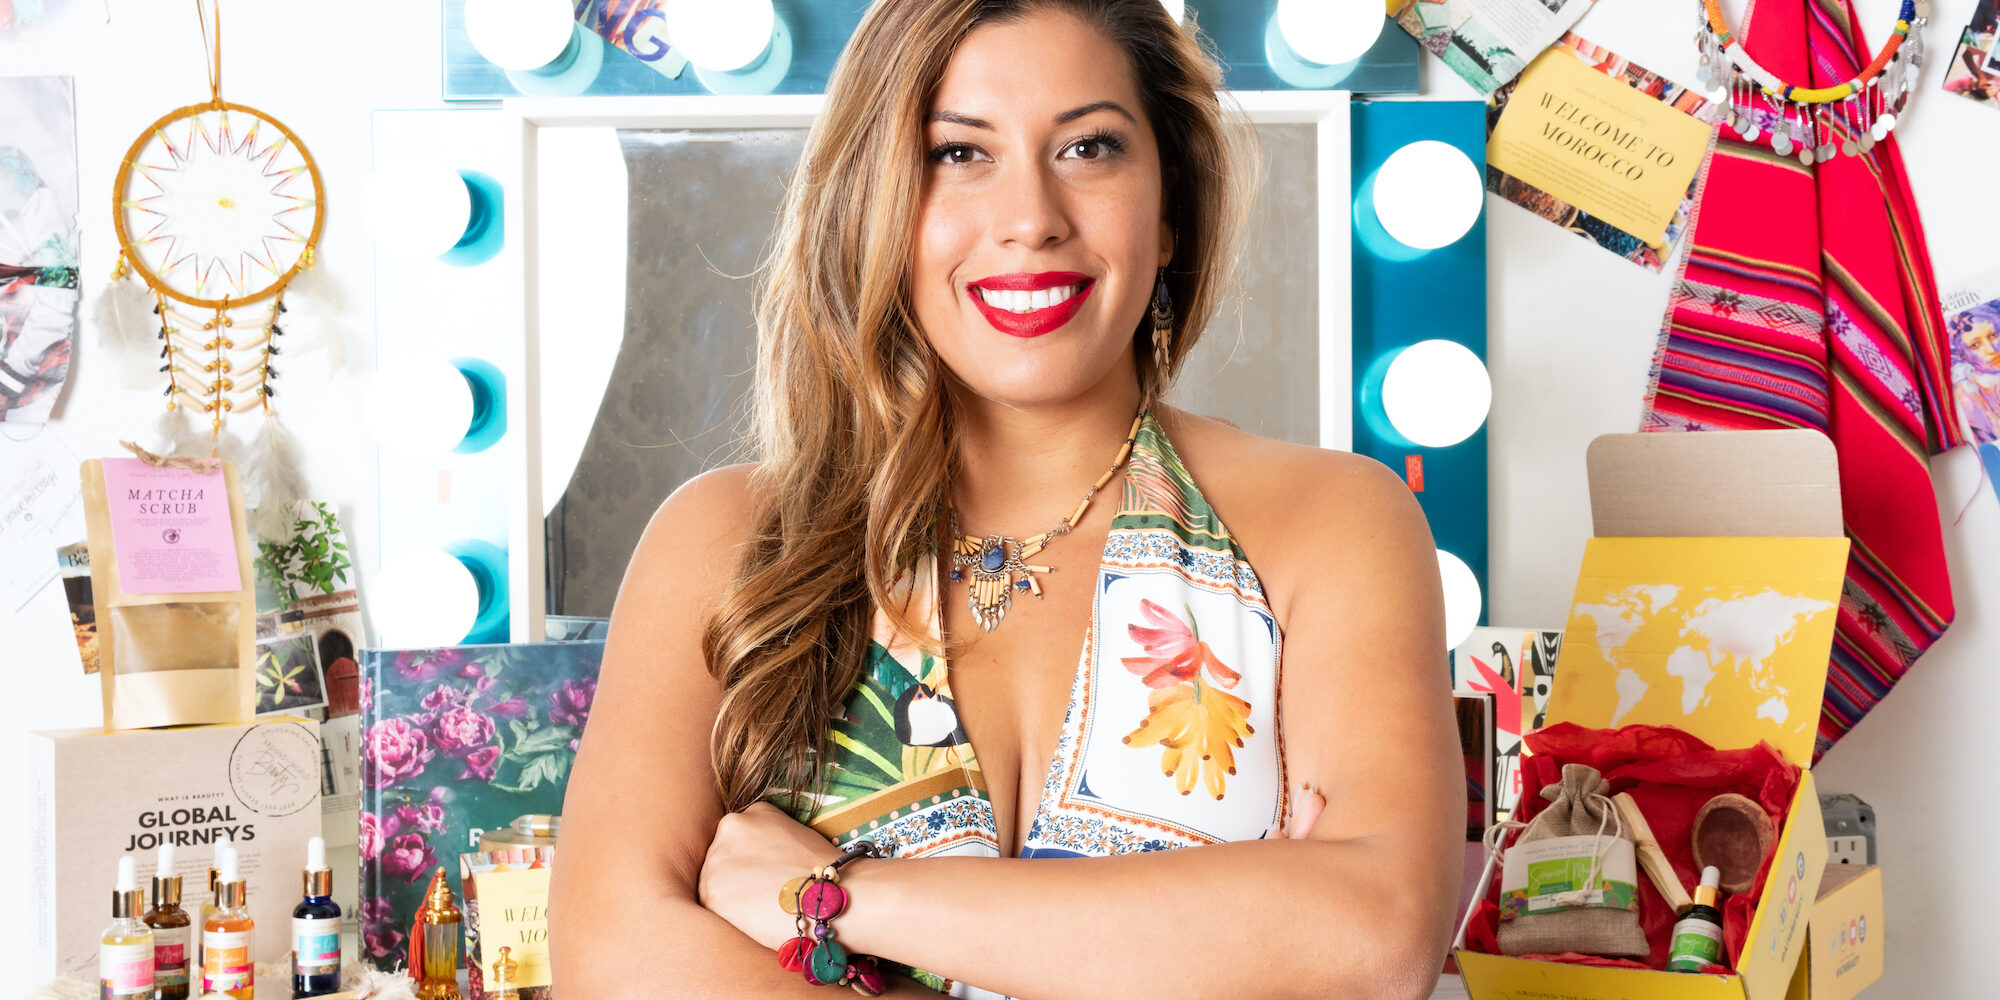 Why Stephanie Flor Is Rebranding Around The World Beauty To Focus On The Latina Community